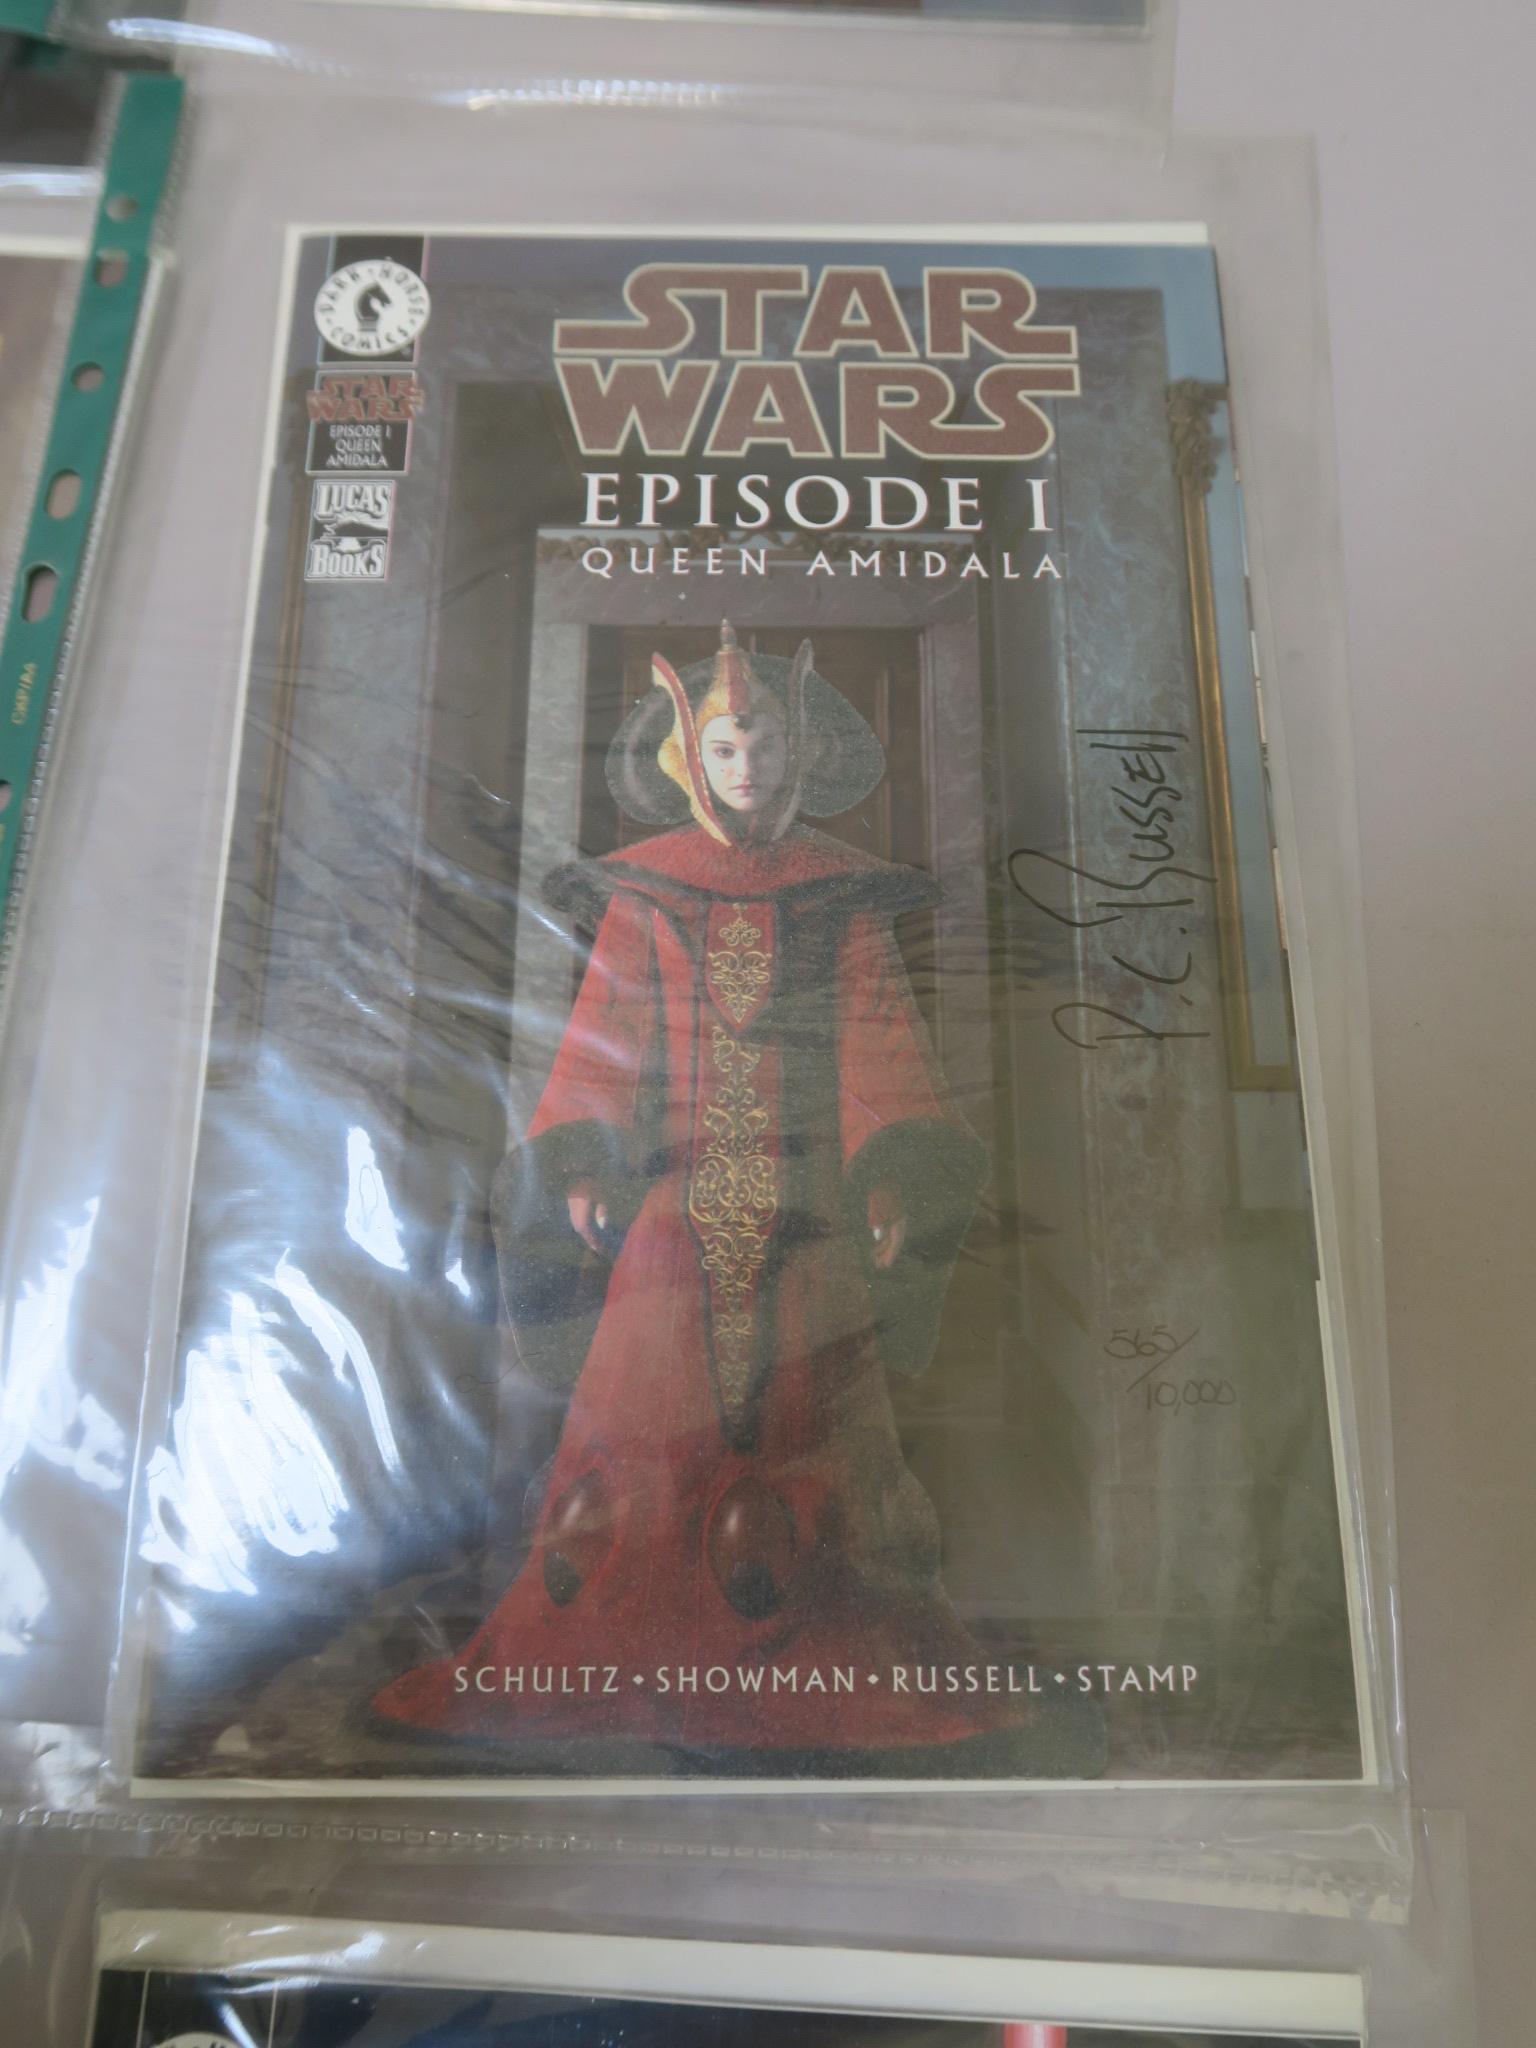 Lot 15 - Star Wars signed comics including Star Wars Queen Amidala #1 (signed by P. Craig Russell), Star Wars